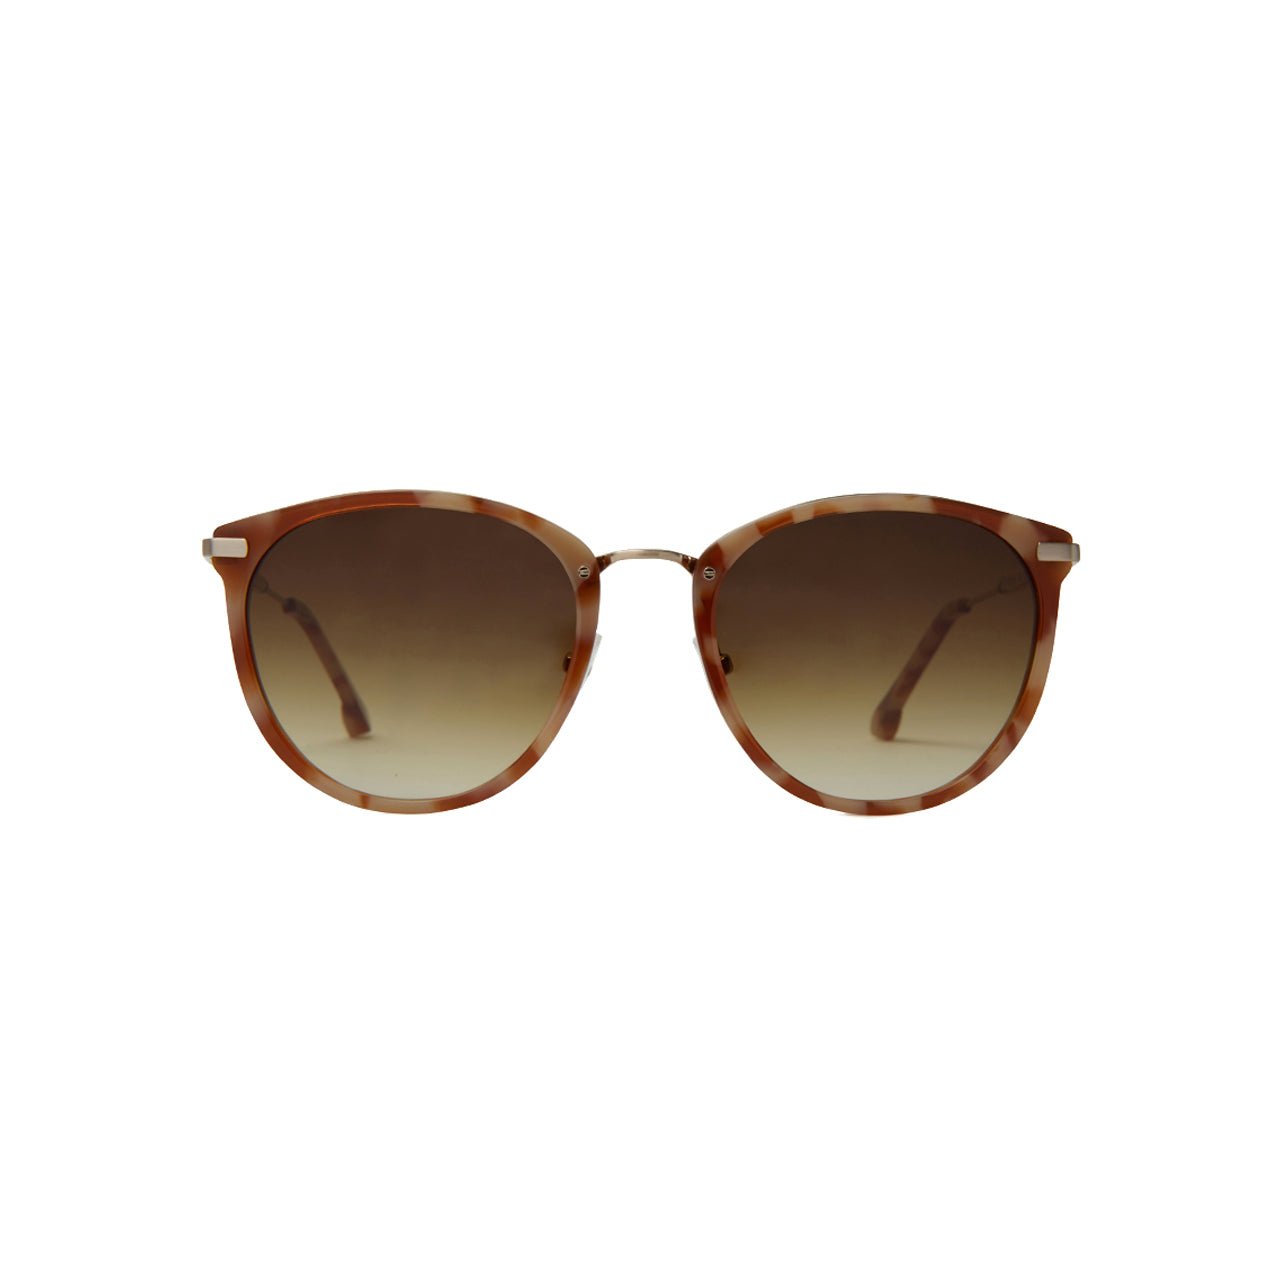 Steven Alan Optical Glenwood Sunglasses